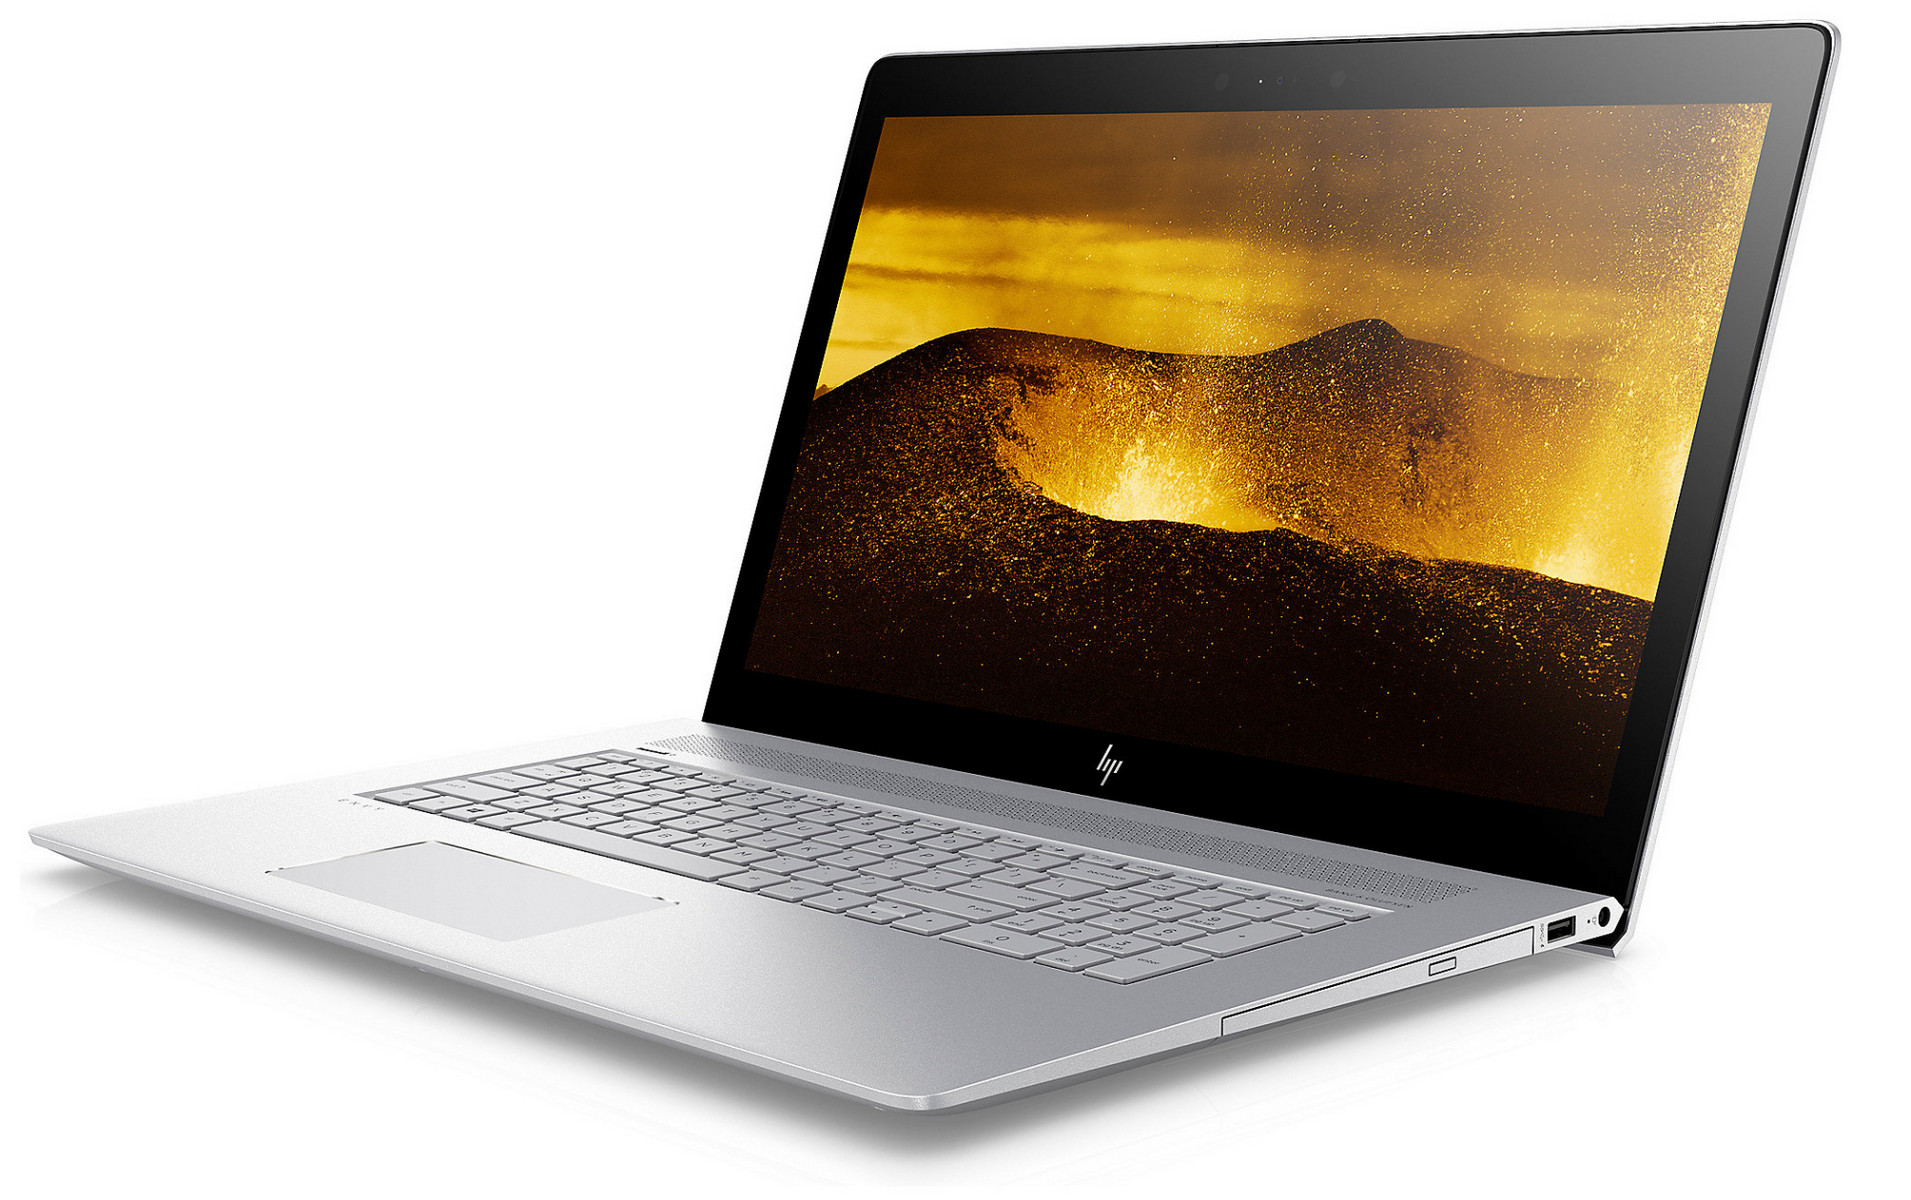 HP Envy 17 (i5-8250U, MX150, SSD, FHD) Laptop Review - NotebookCheck.net  Reviews